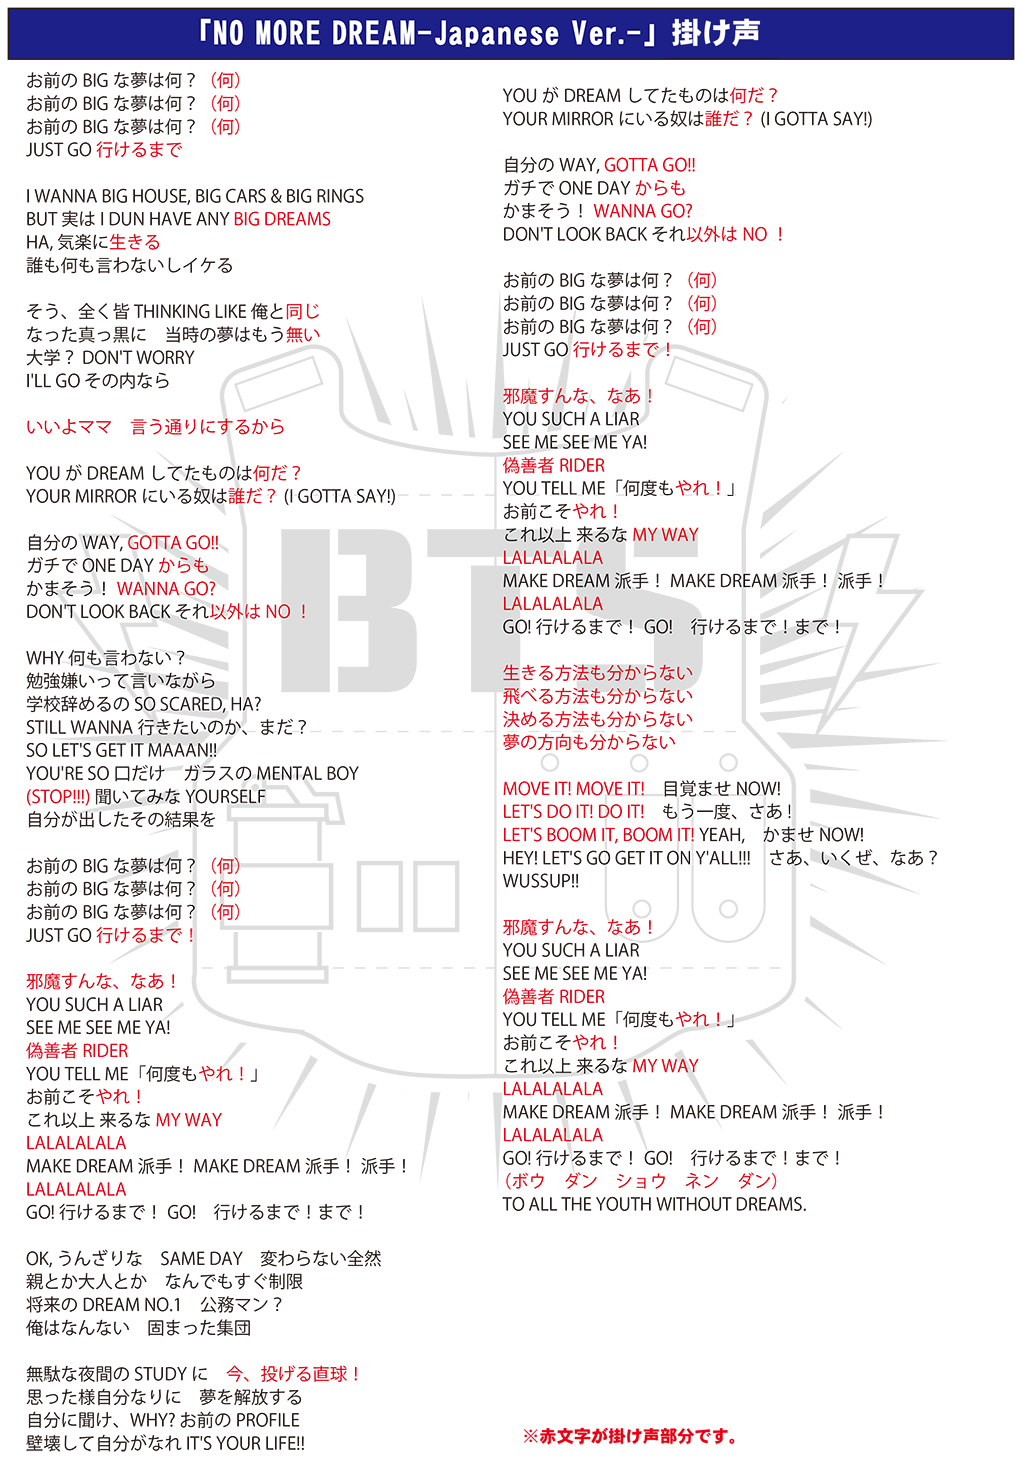 応援方法 Bts Japan Official Fanclub